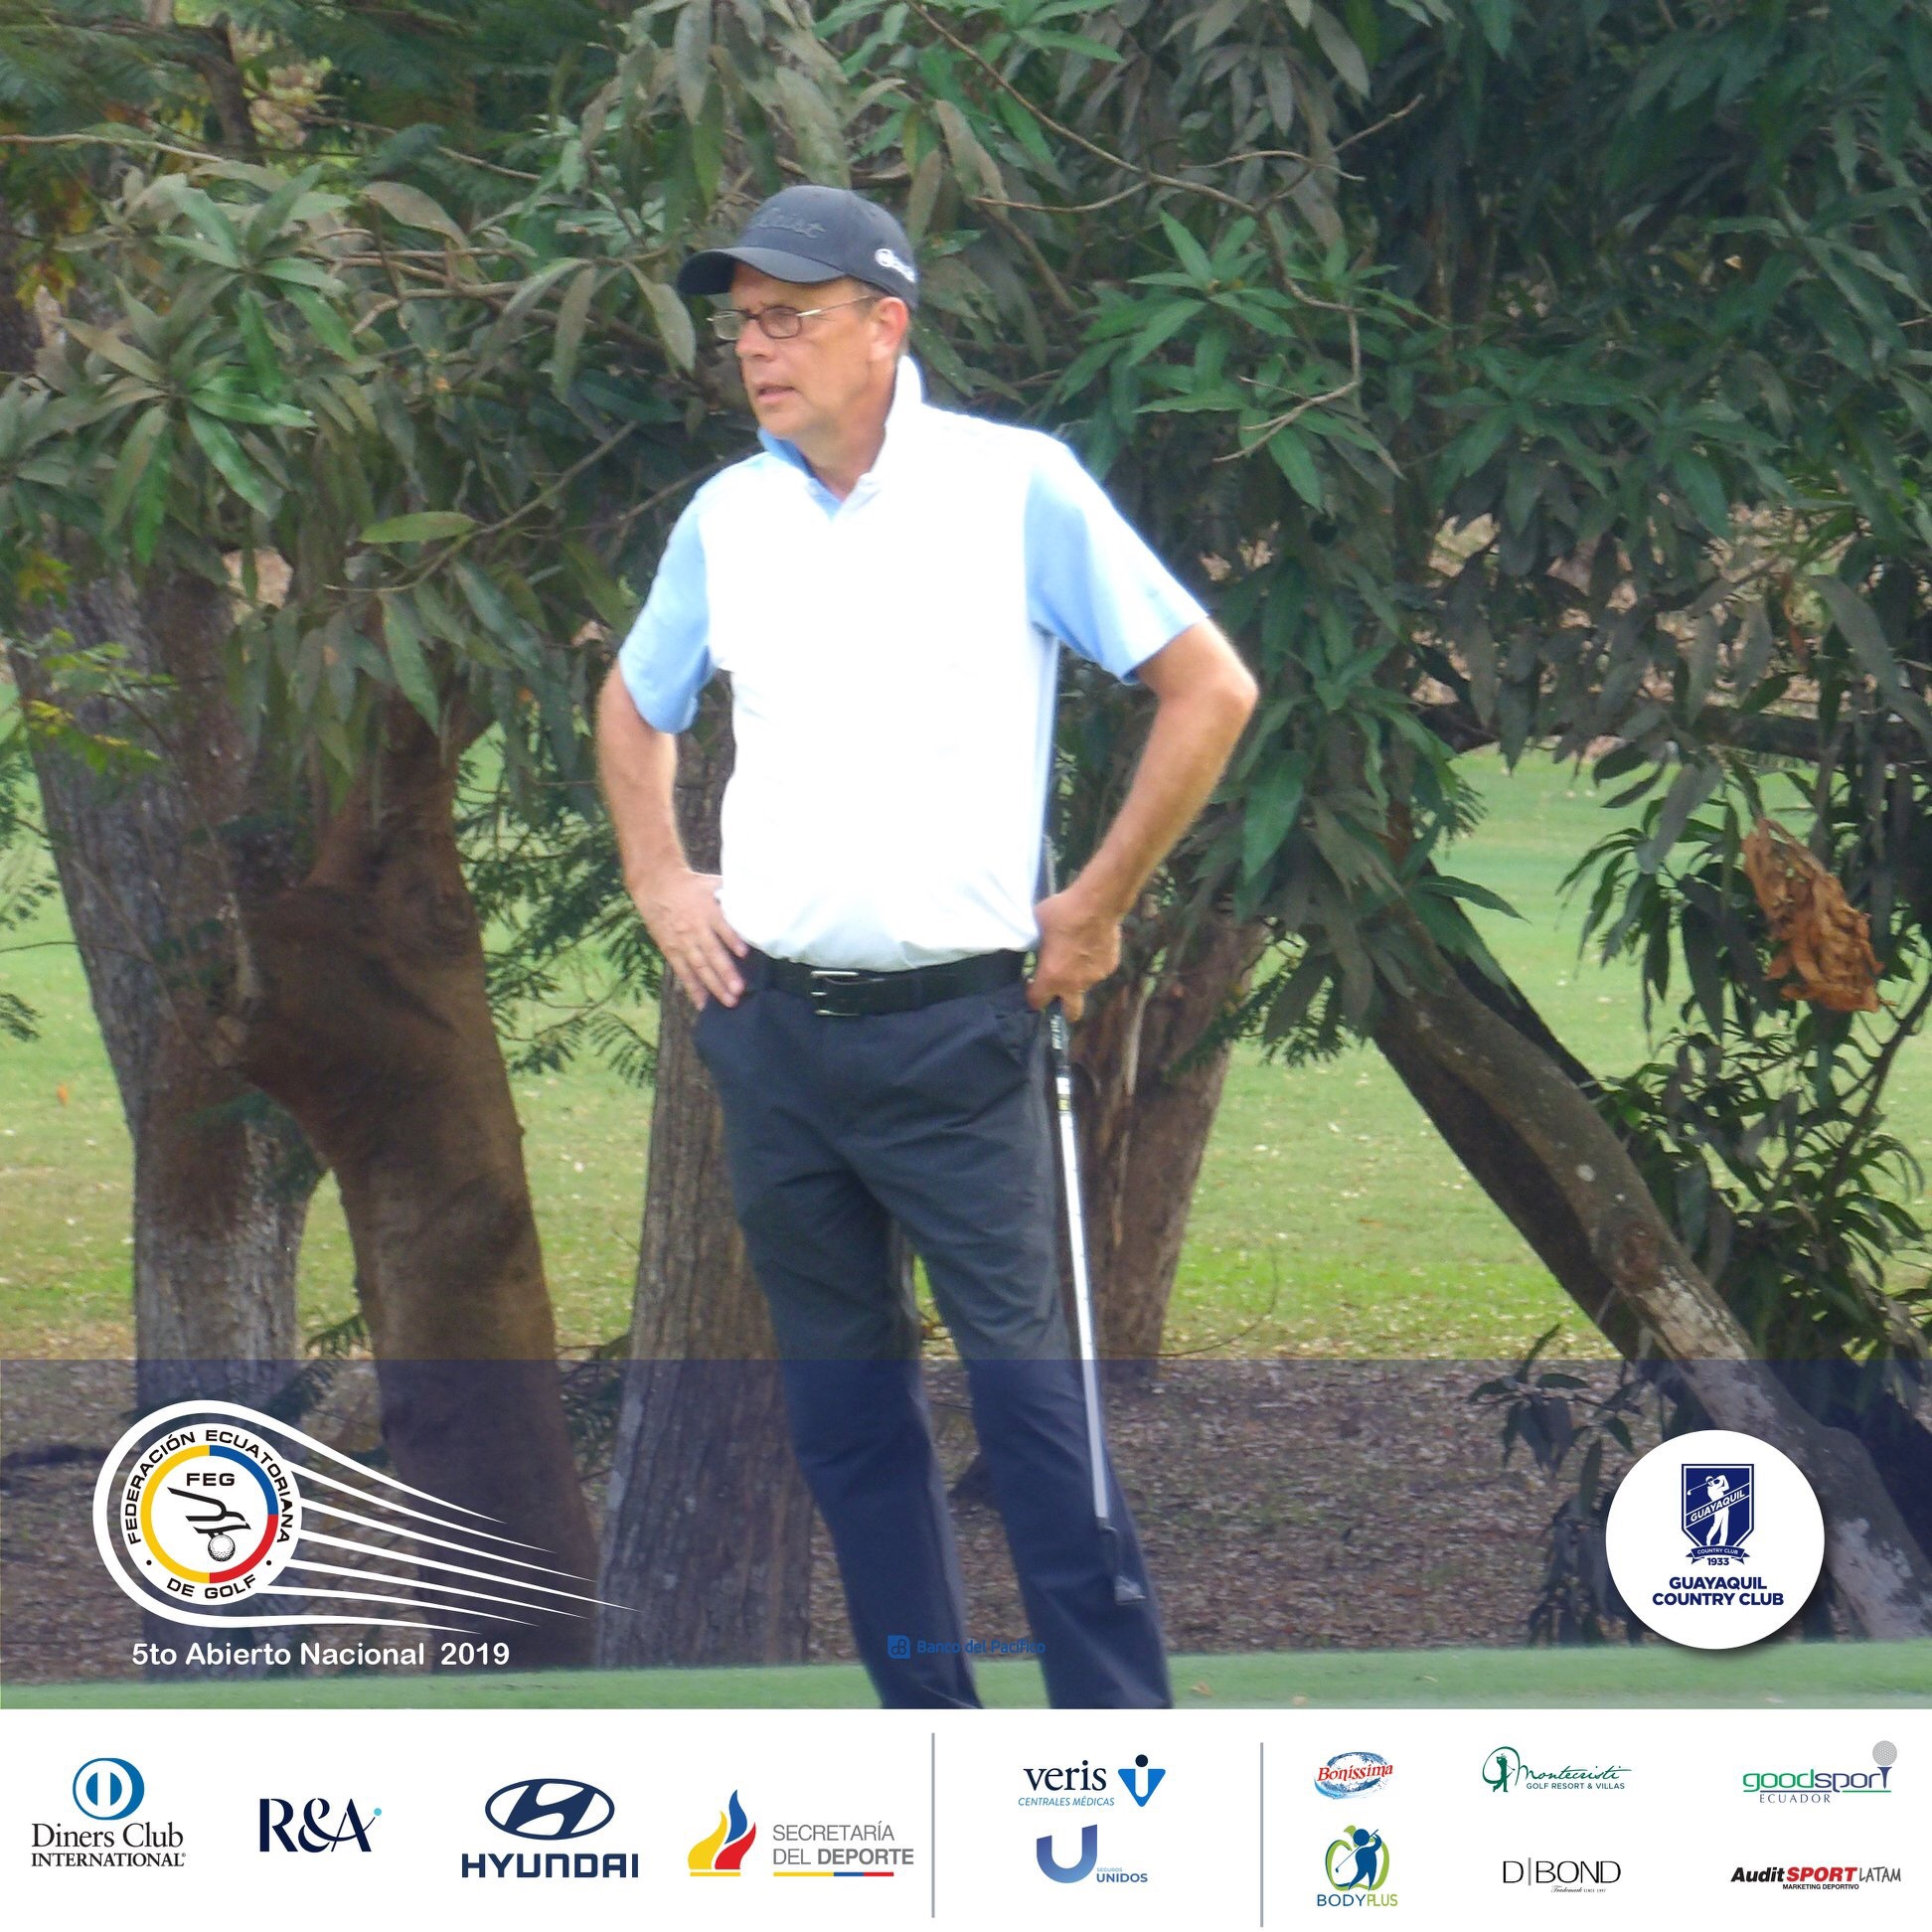 The Ecuadorian National Open of The Federacion Ecuatoriana de Golf in GCC Guayaquil Country Club 2019 | Eco. Lassi Pensikkala